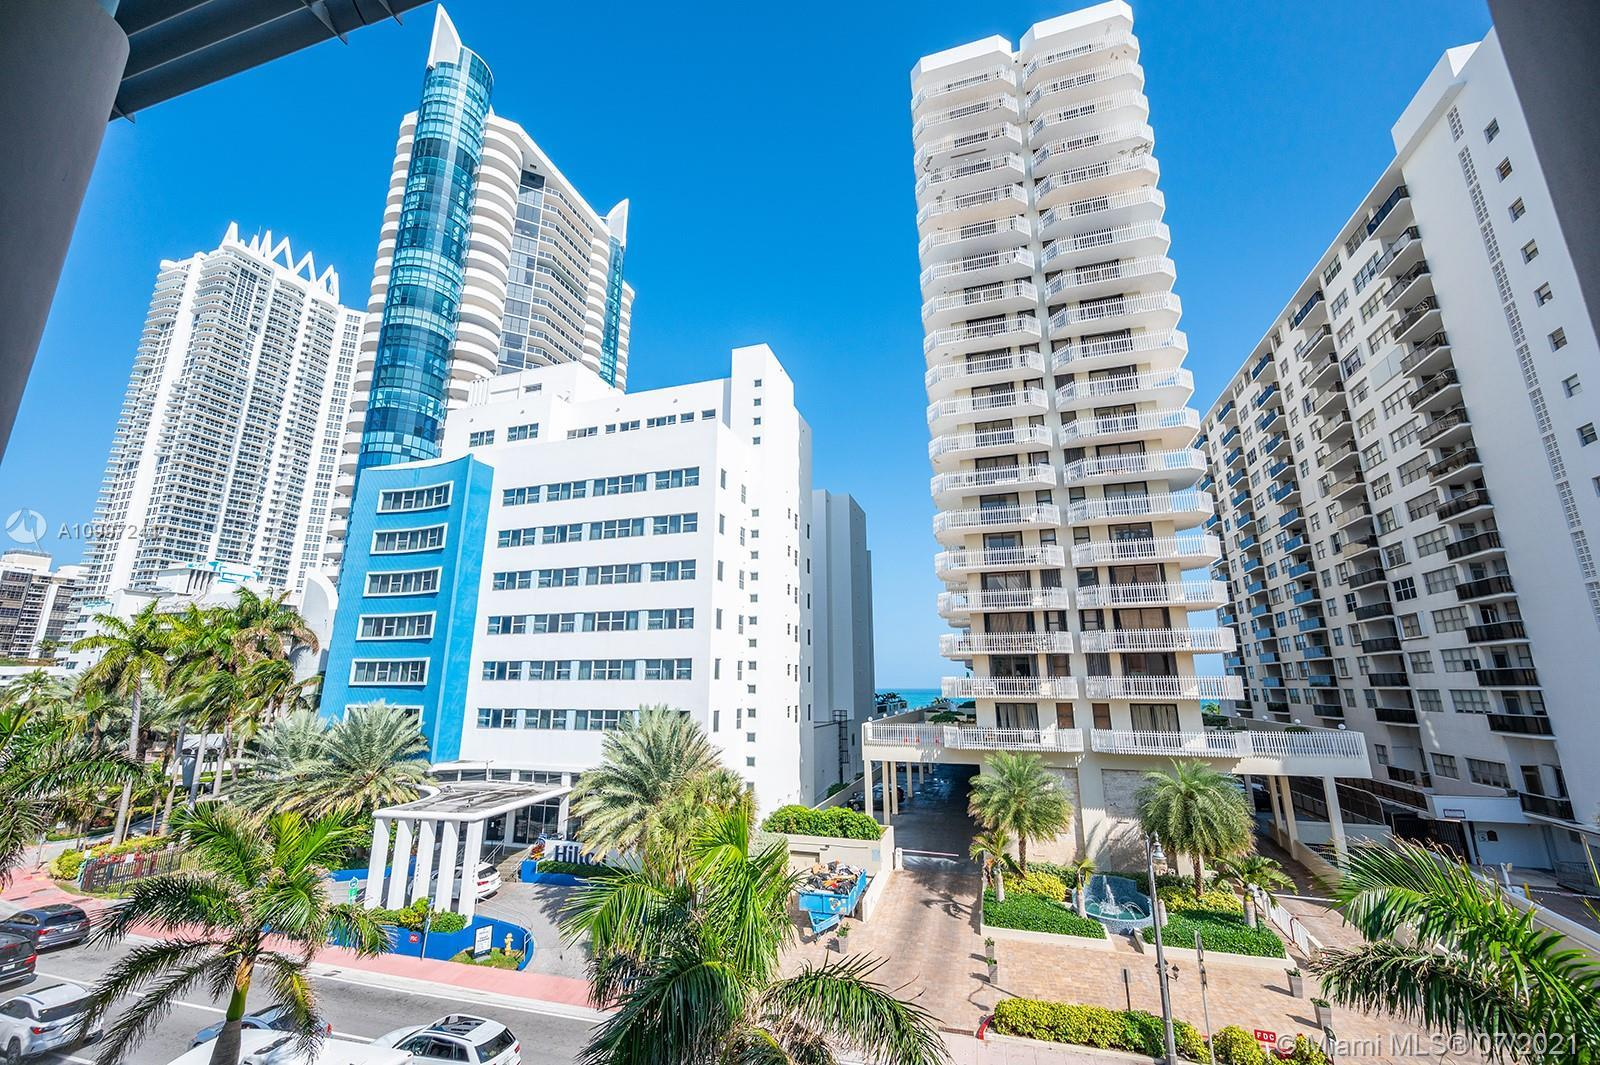 PRICED TO SELL. Boutique Condo/Hotel in Miami Beach across the ocean. Centrally located between Sout